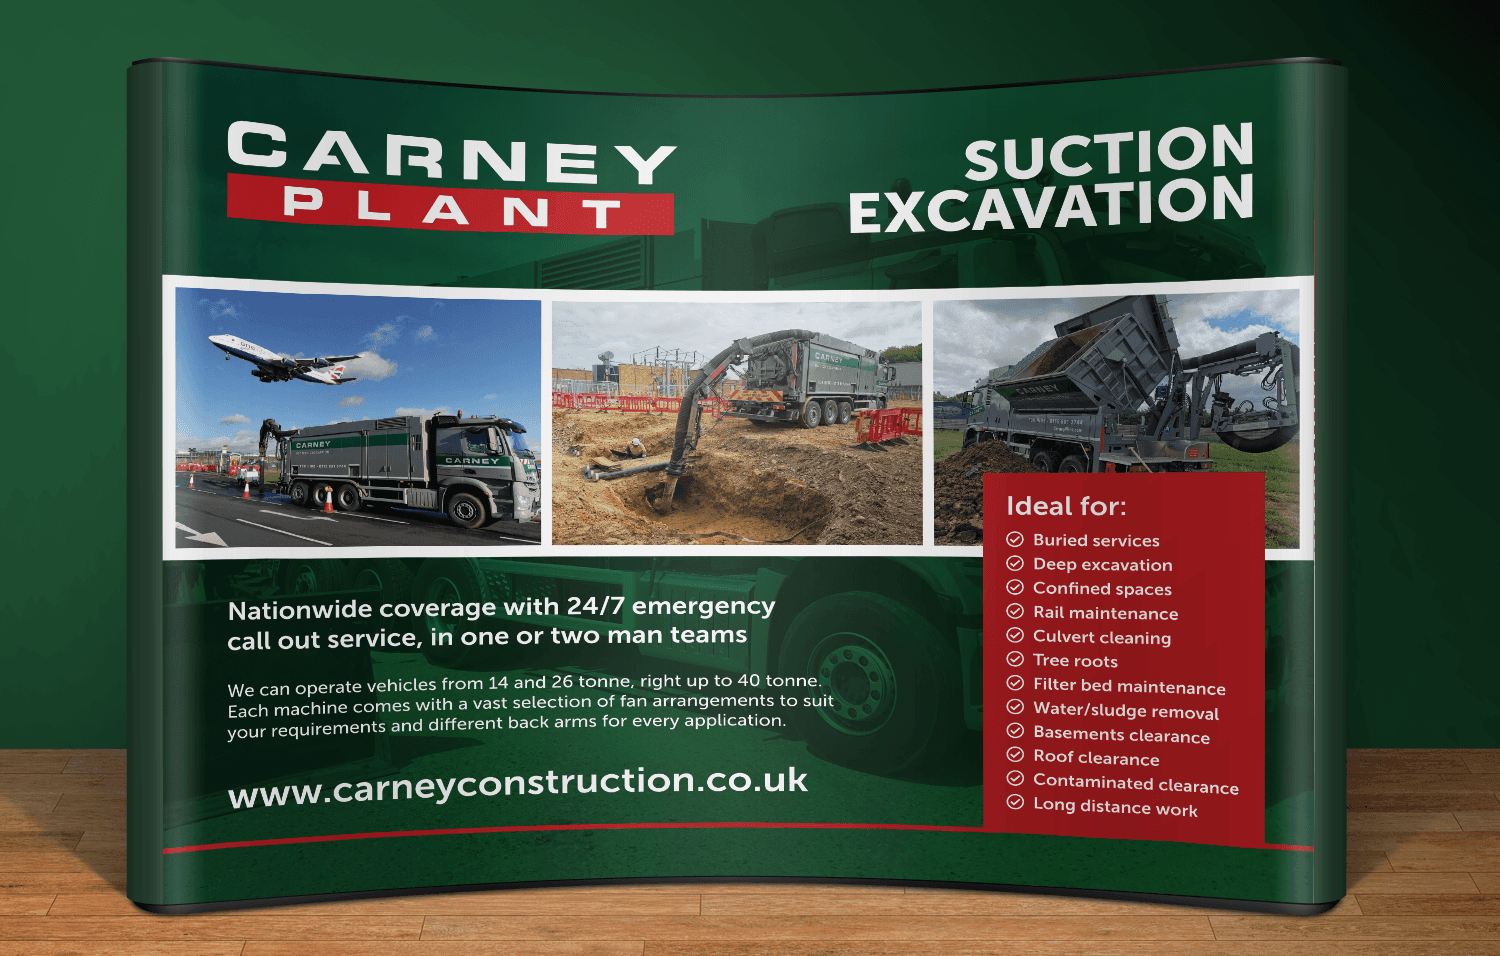 Carney Plant Exhibition Stand